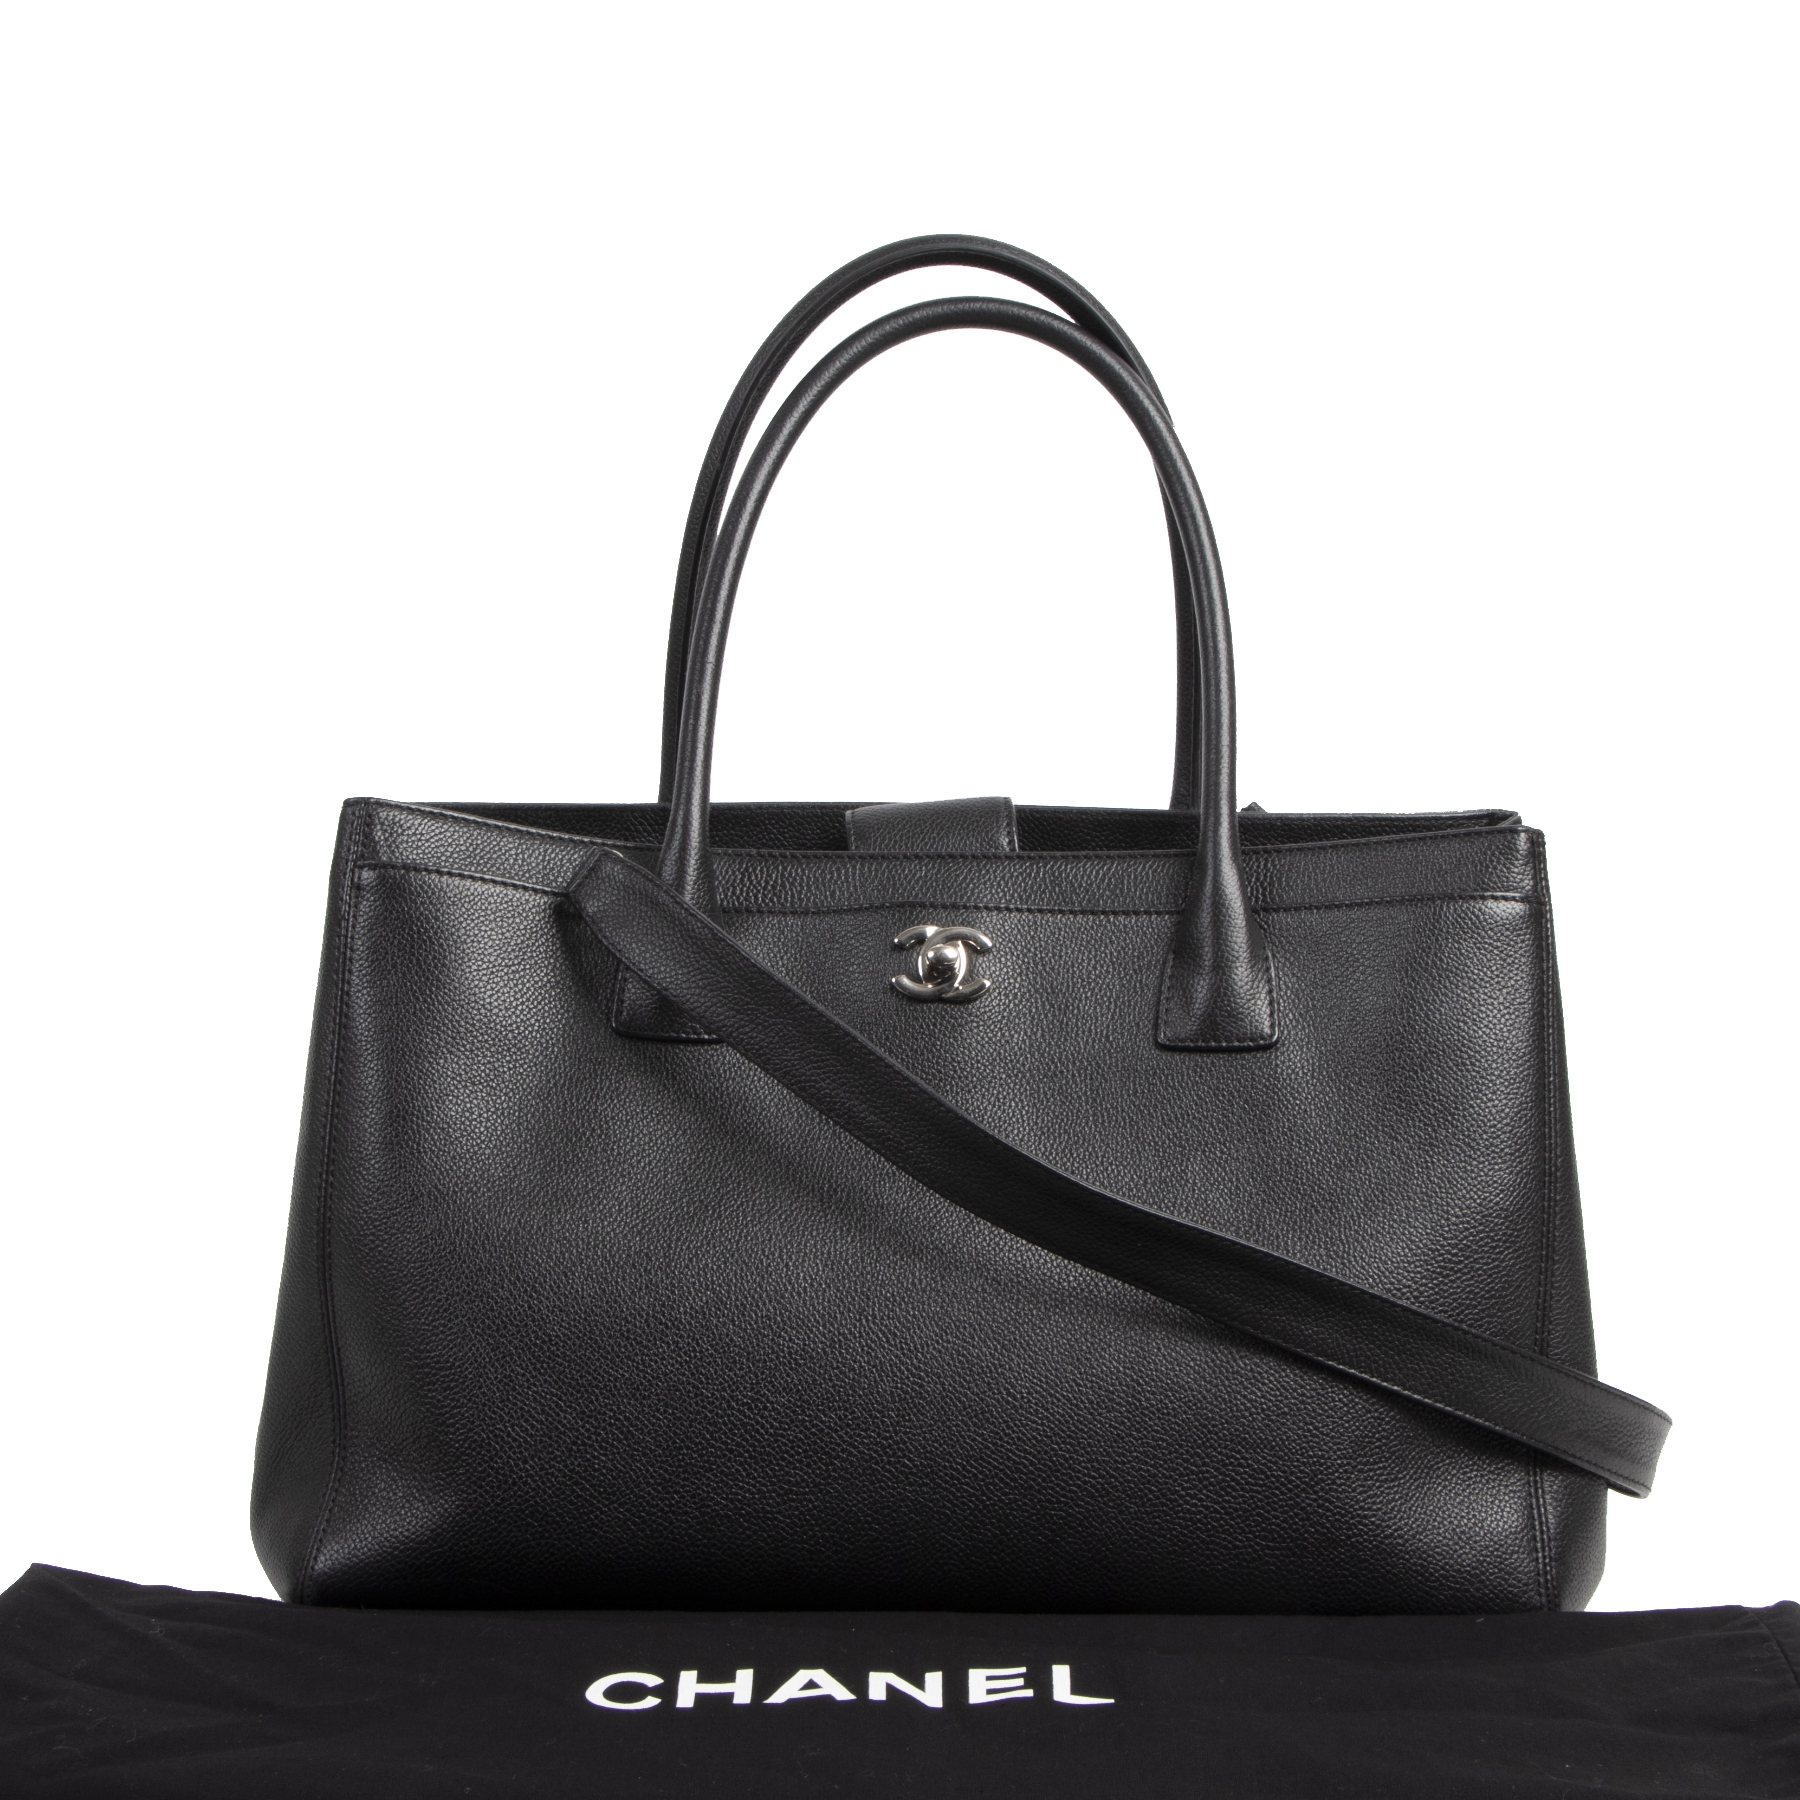 Authentieke tweedehands vintage Chanel Black Leather Executive Tote koop online webshop LabeLOV